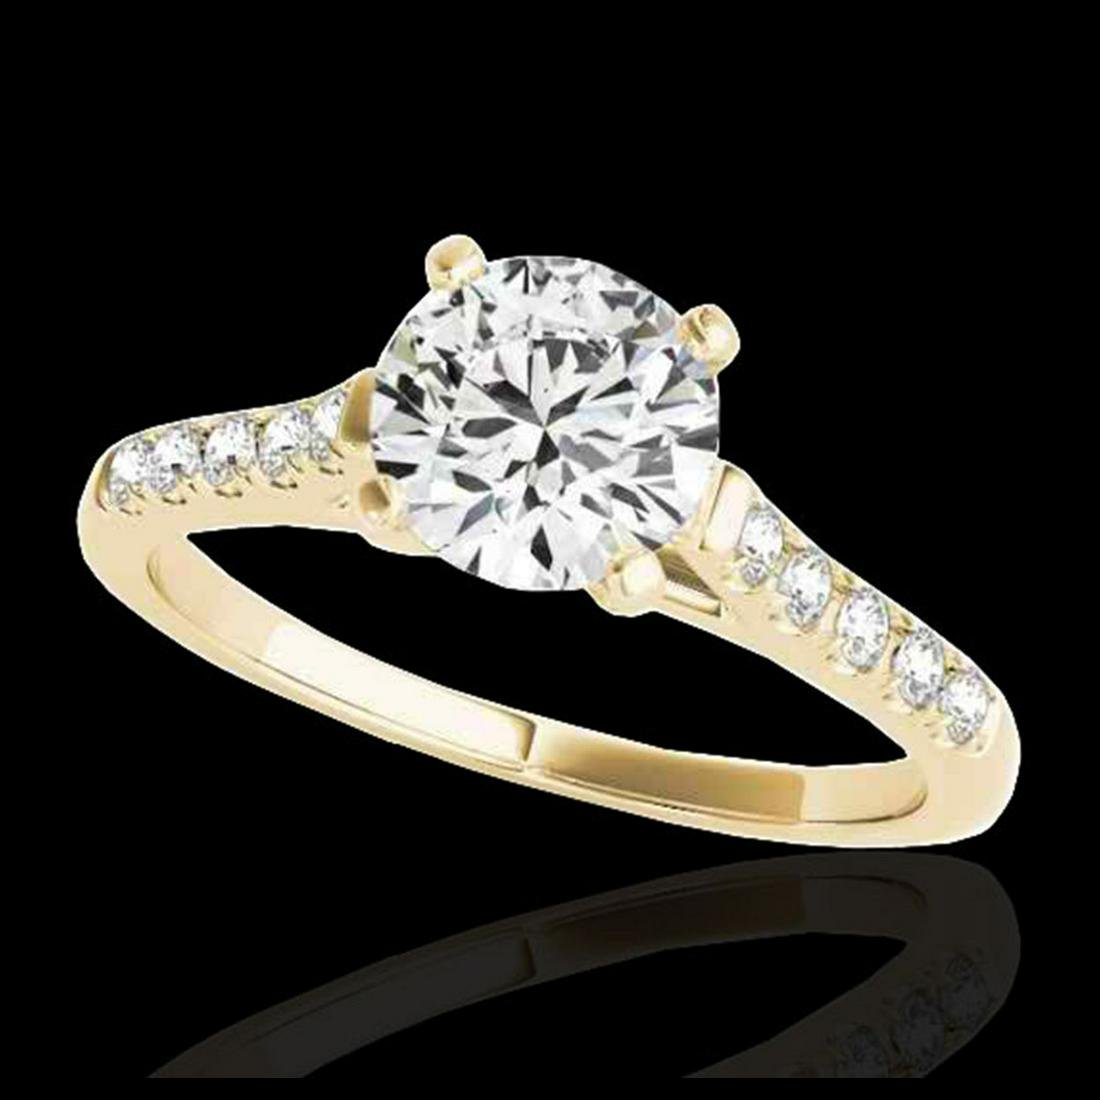 1.45 ctw H-SI/I Diamond Solitaire Ring 10K Yellow Gold